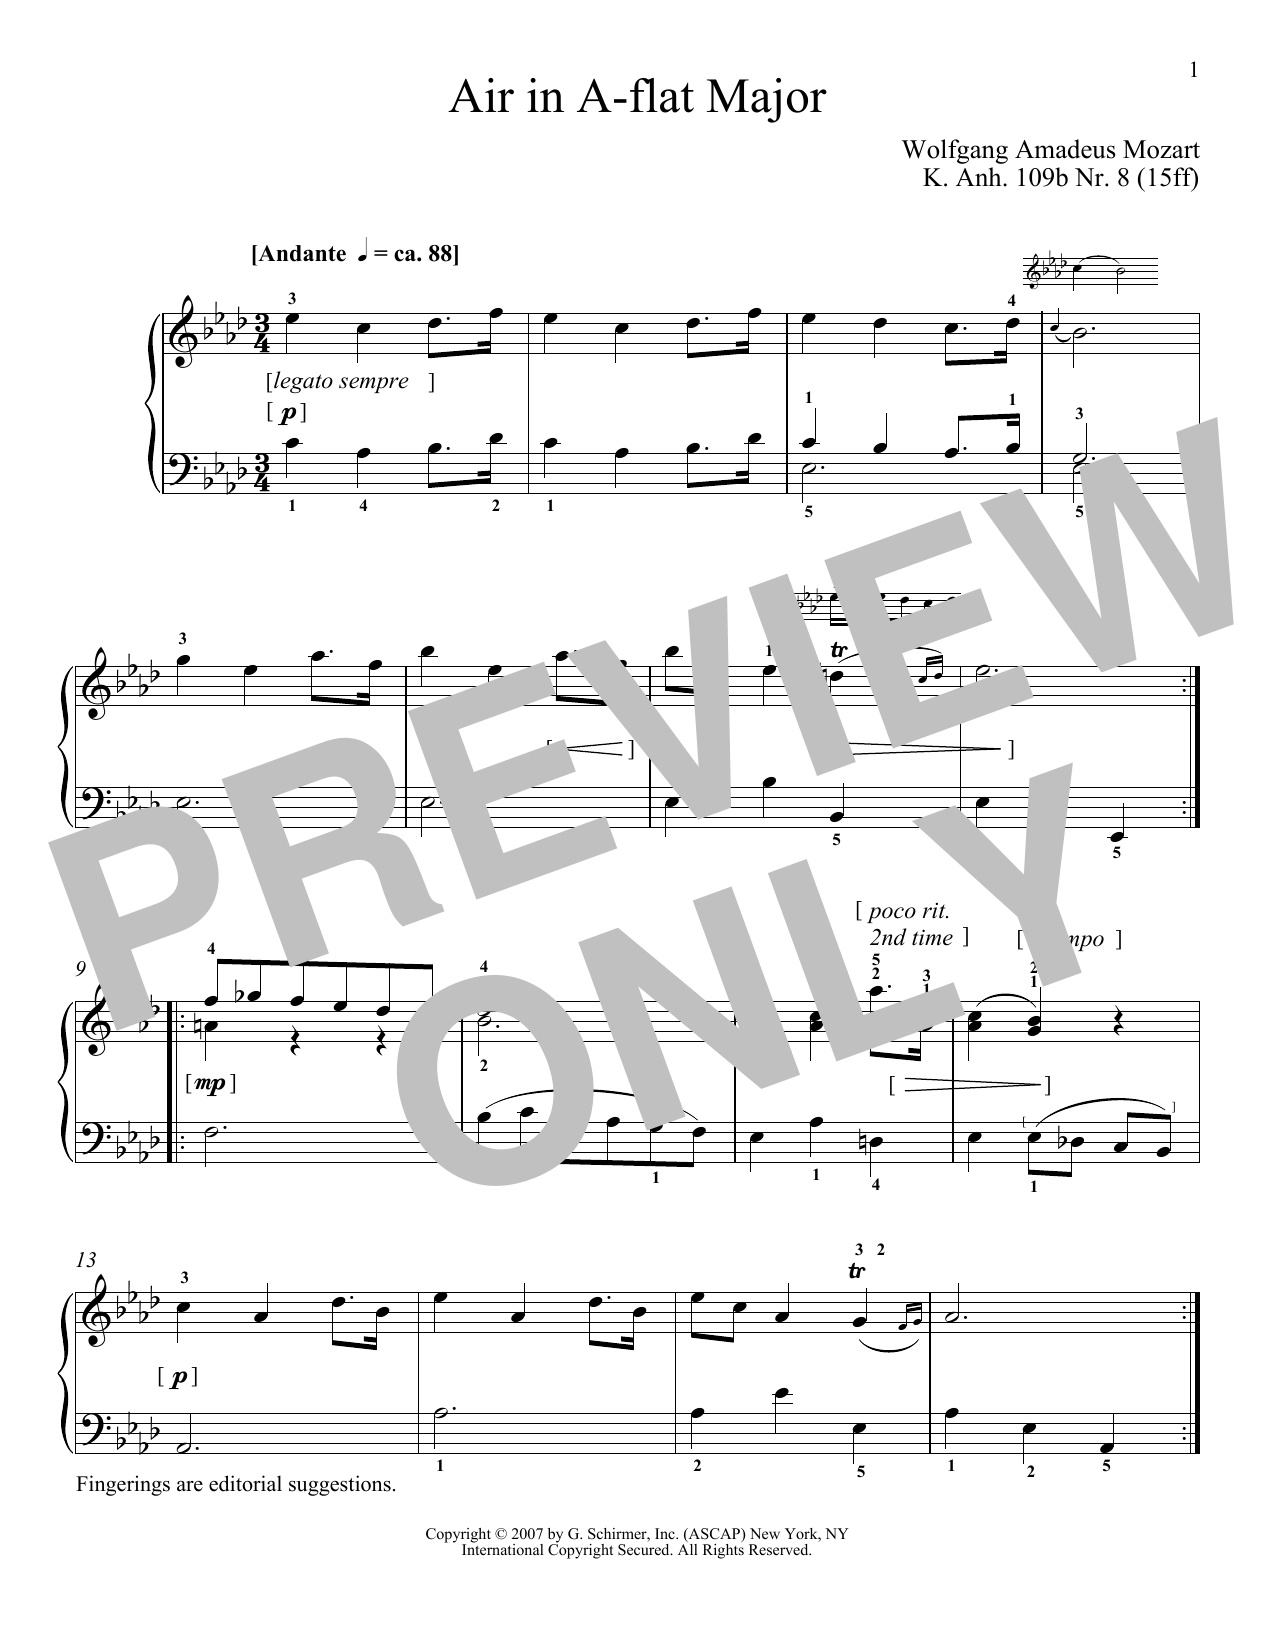 Air In A-Flat Major, K109b, No. 8 Sheet Music